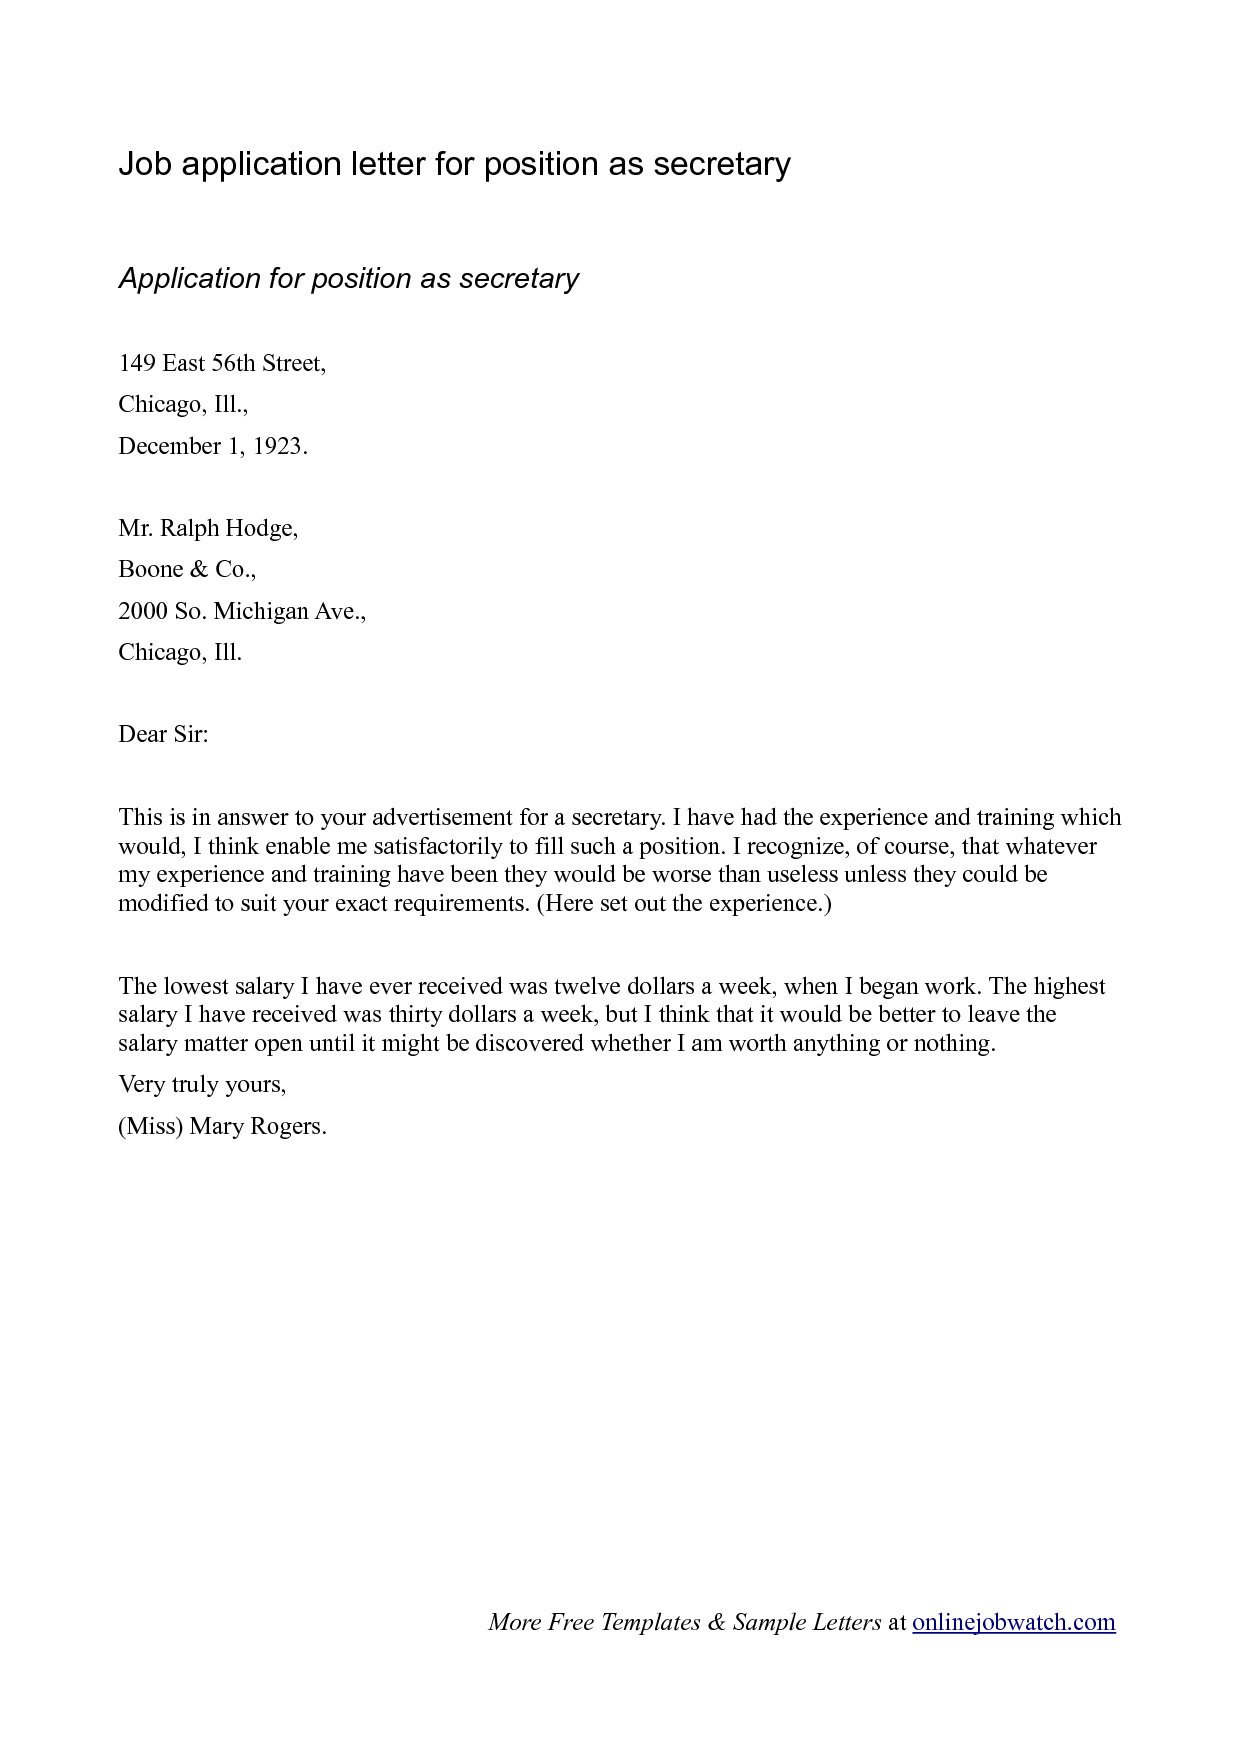 sample email job application letter pdf